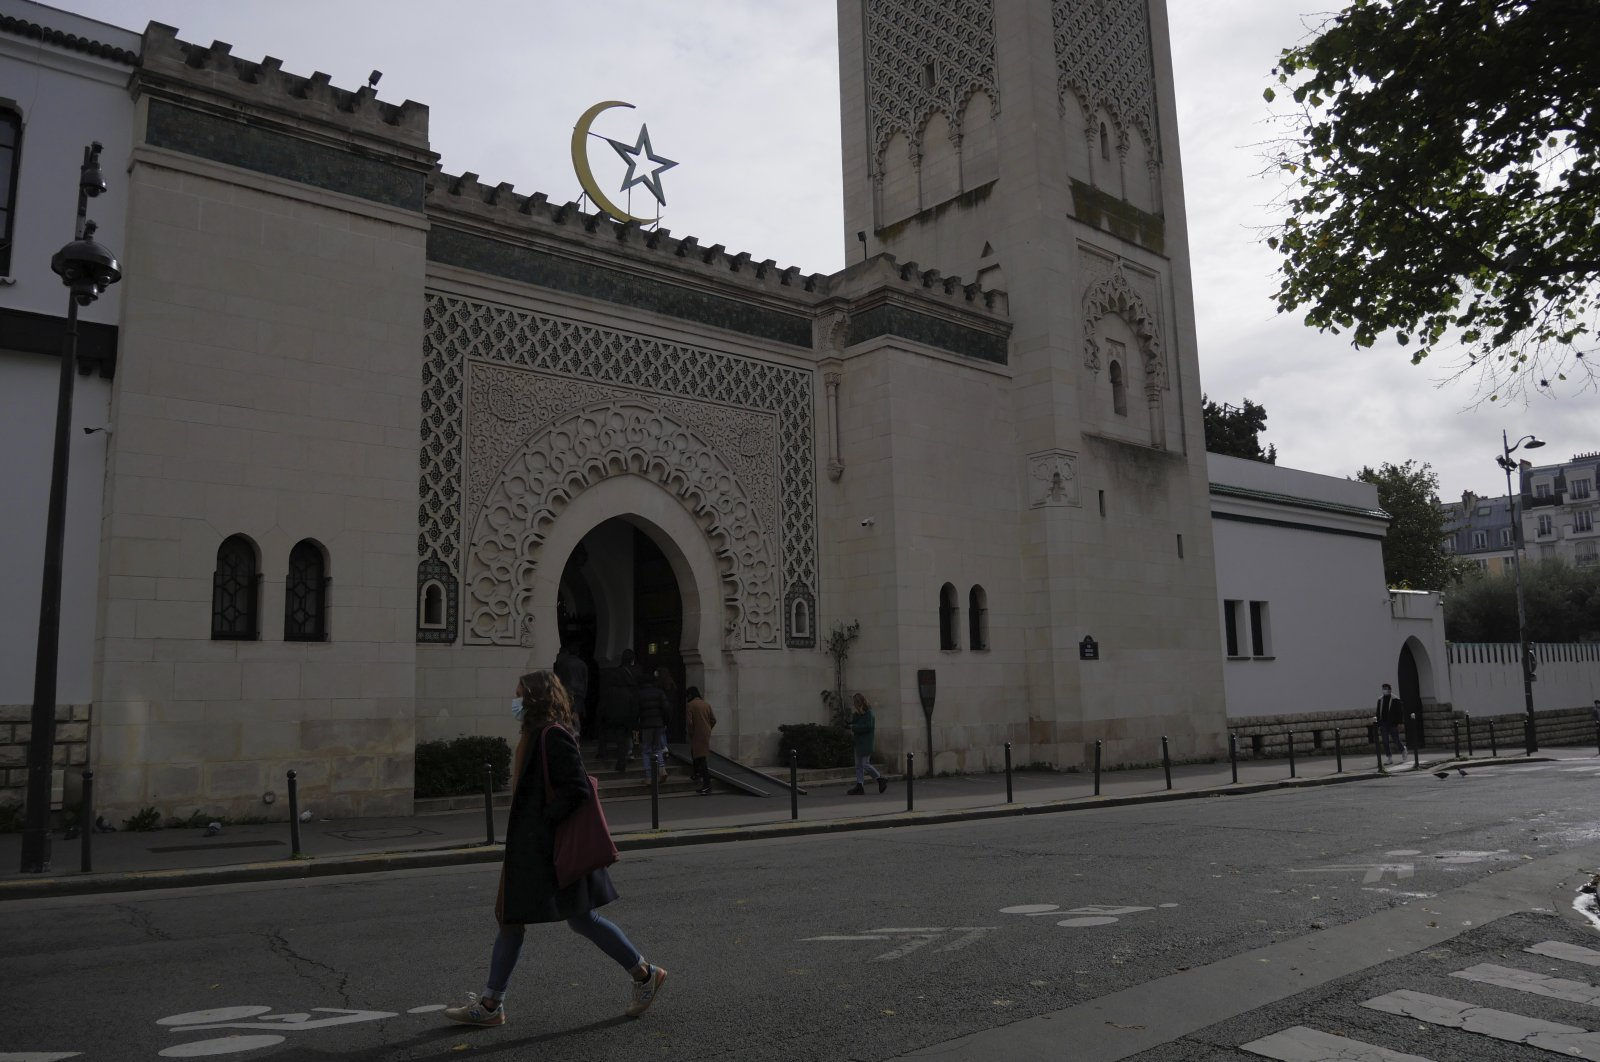 A woman walks outside the Paris mosque, in Paris, France, Oct. 29, 2020. (AP Photo)